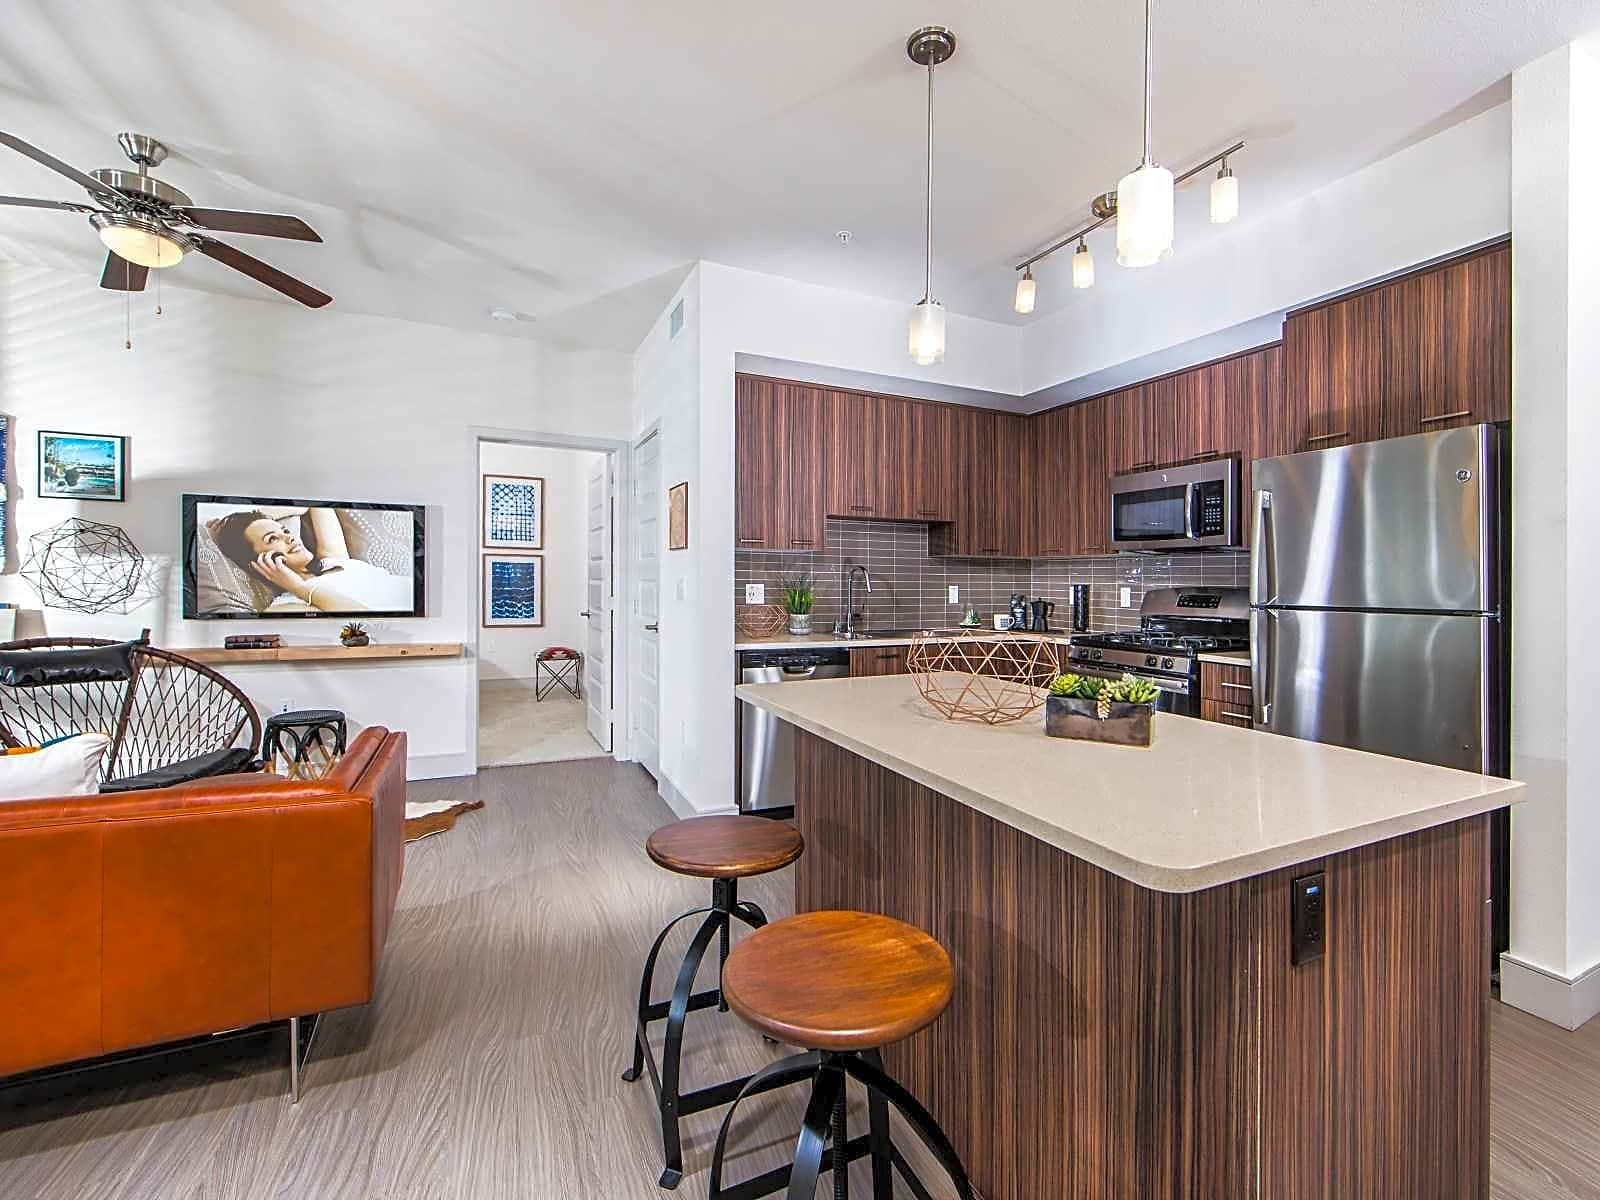 Select homes feature kitchen islands with USB charging outlets